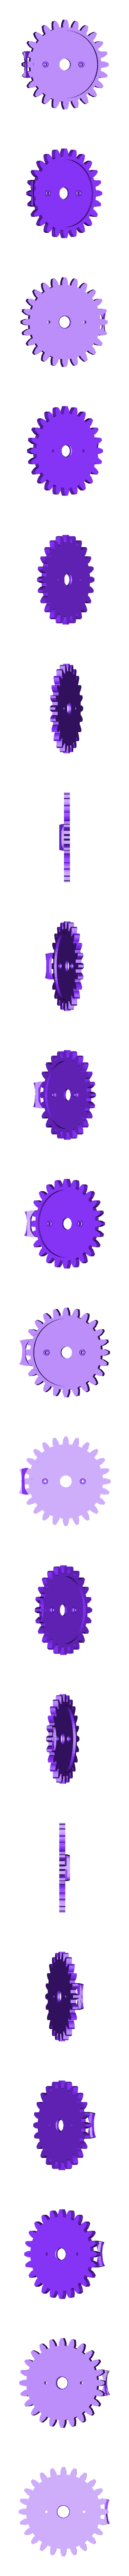 open_close_sign_parts_-_R_main_gear.stl Download free STL file Open-CloseD sign • 3D print template, frankv